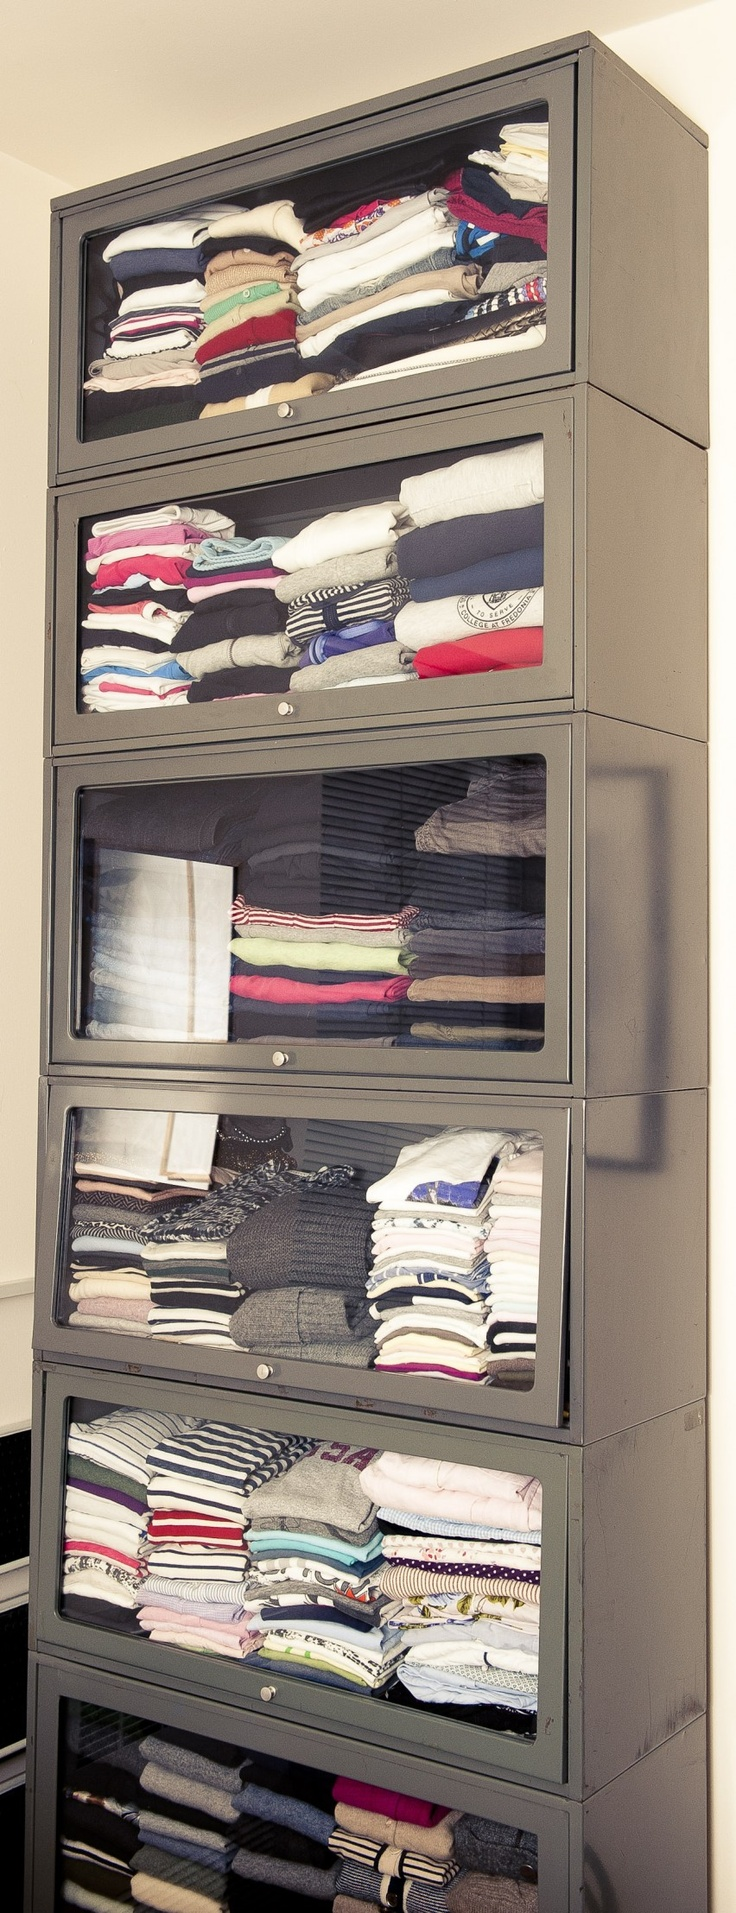 put i ask sweaters to solutions organize saving organizing clothes for then how creative organizer closet sweater space anna